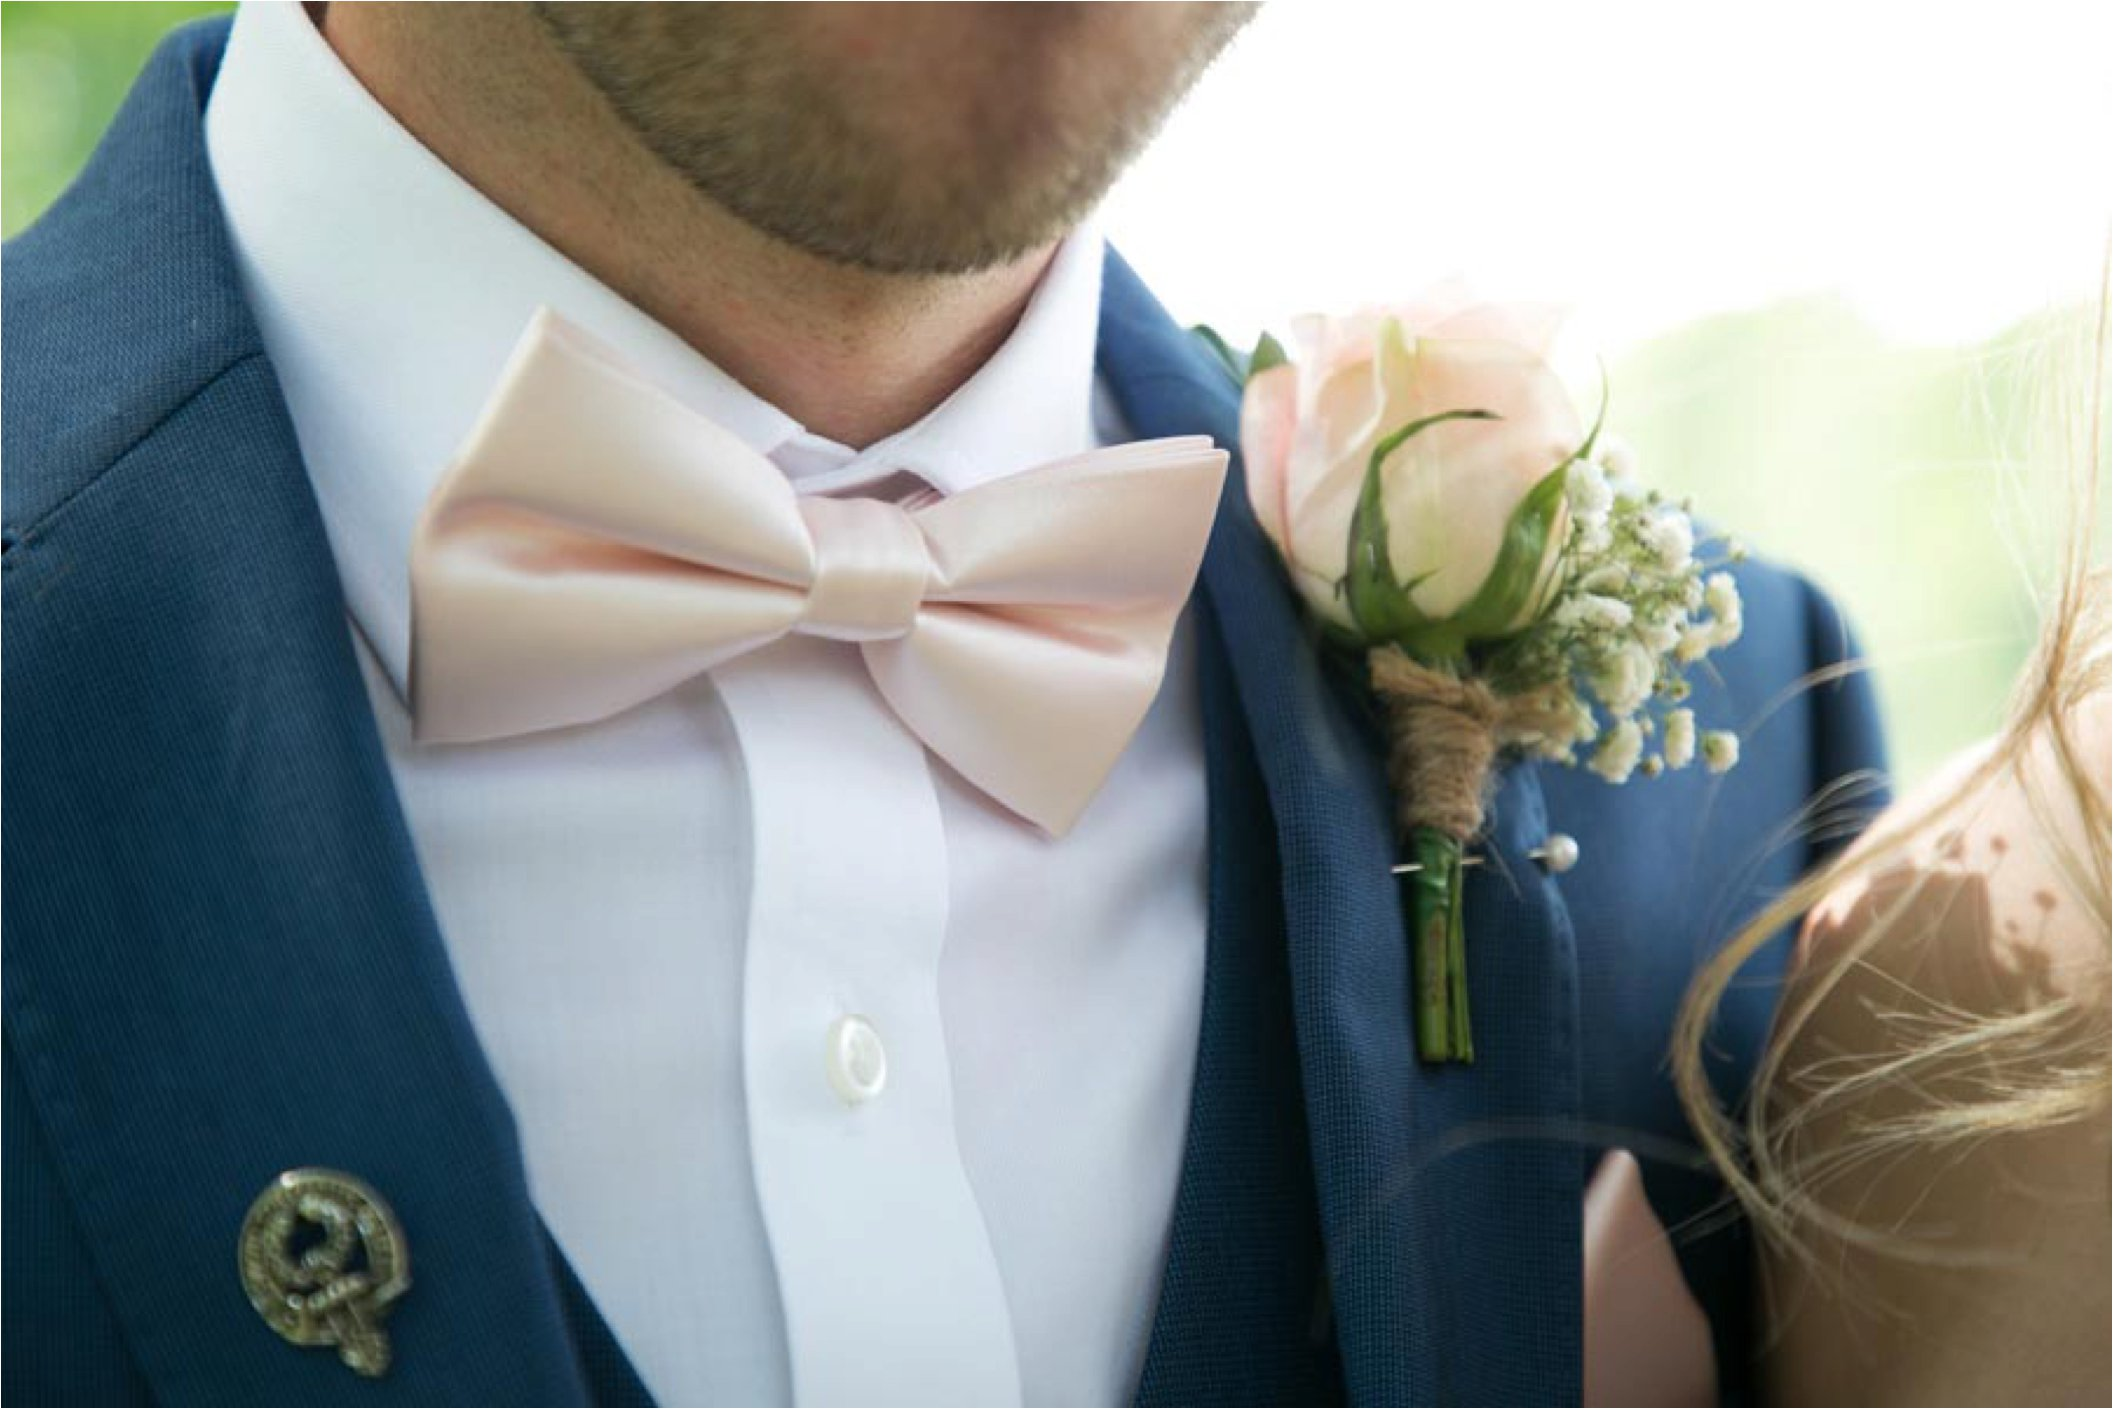 pale pink bow tie on groom